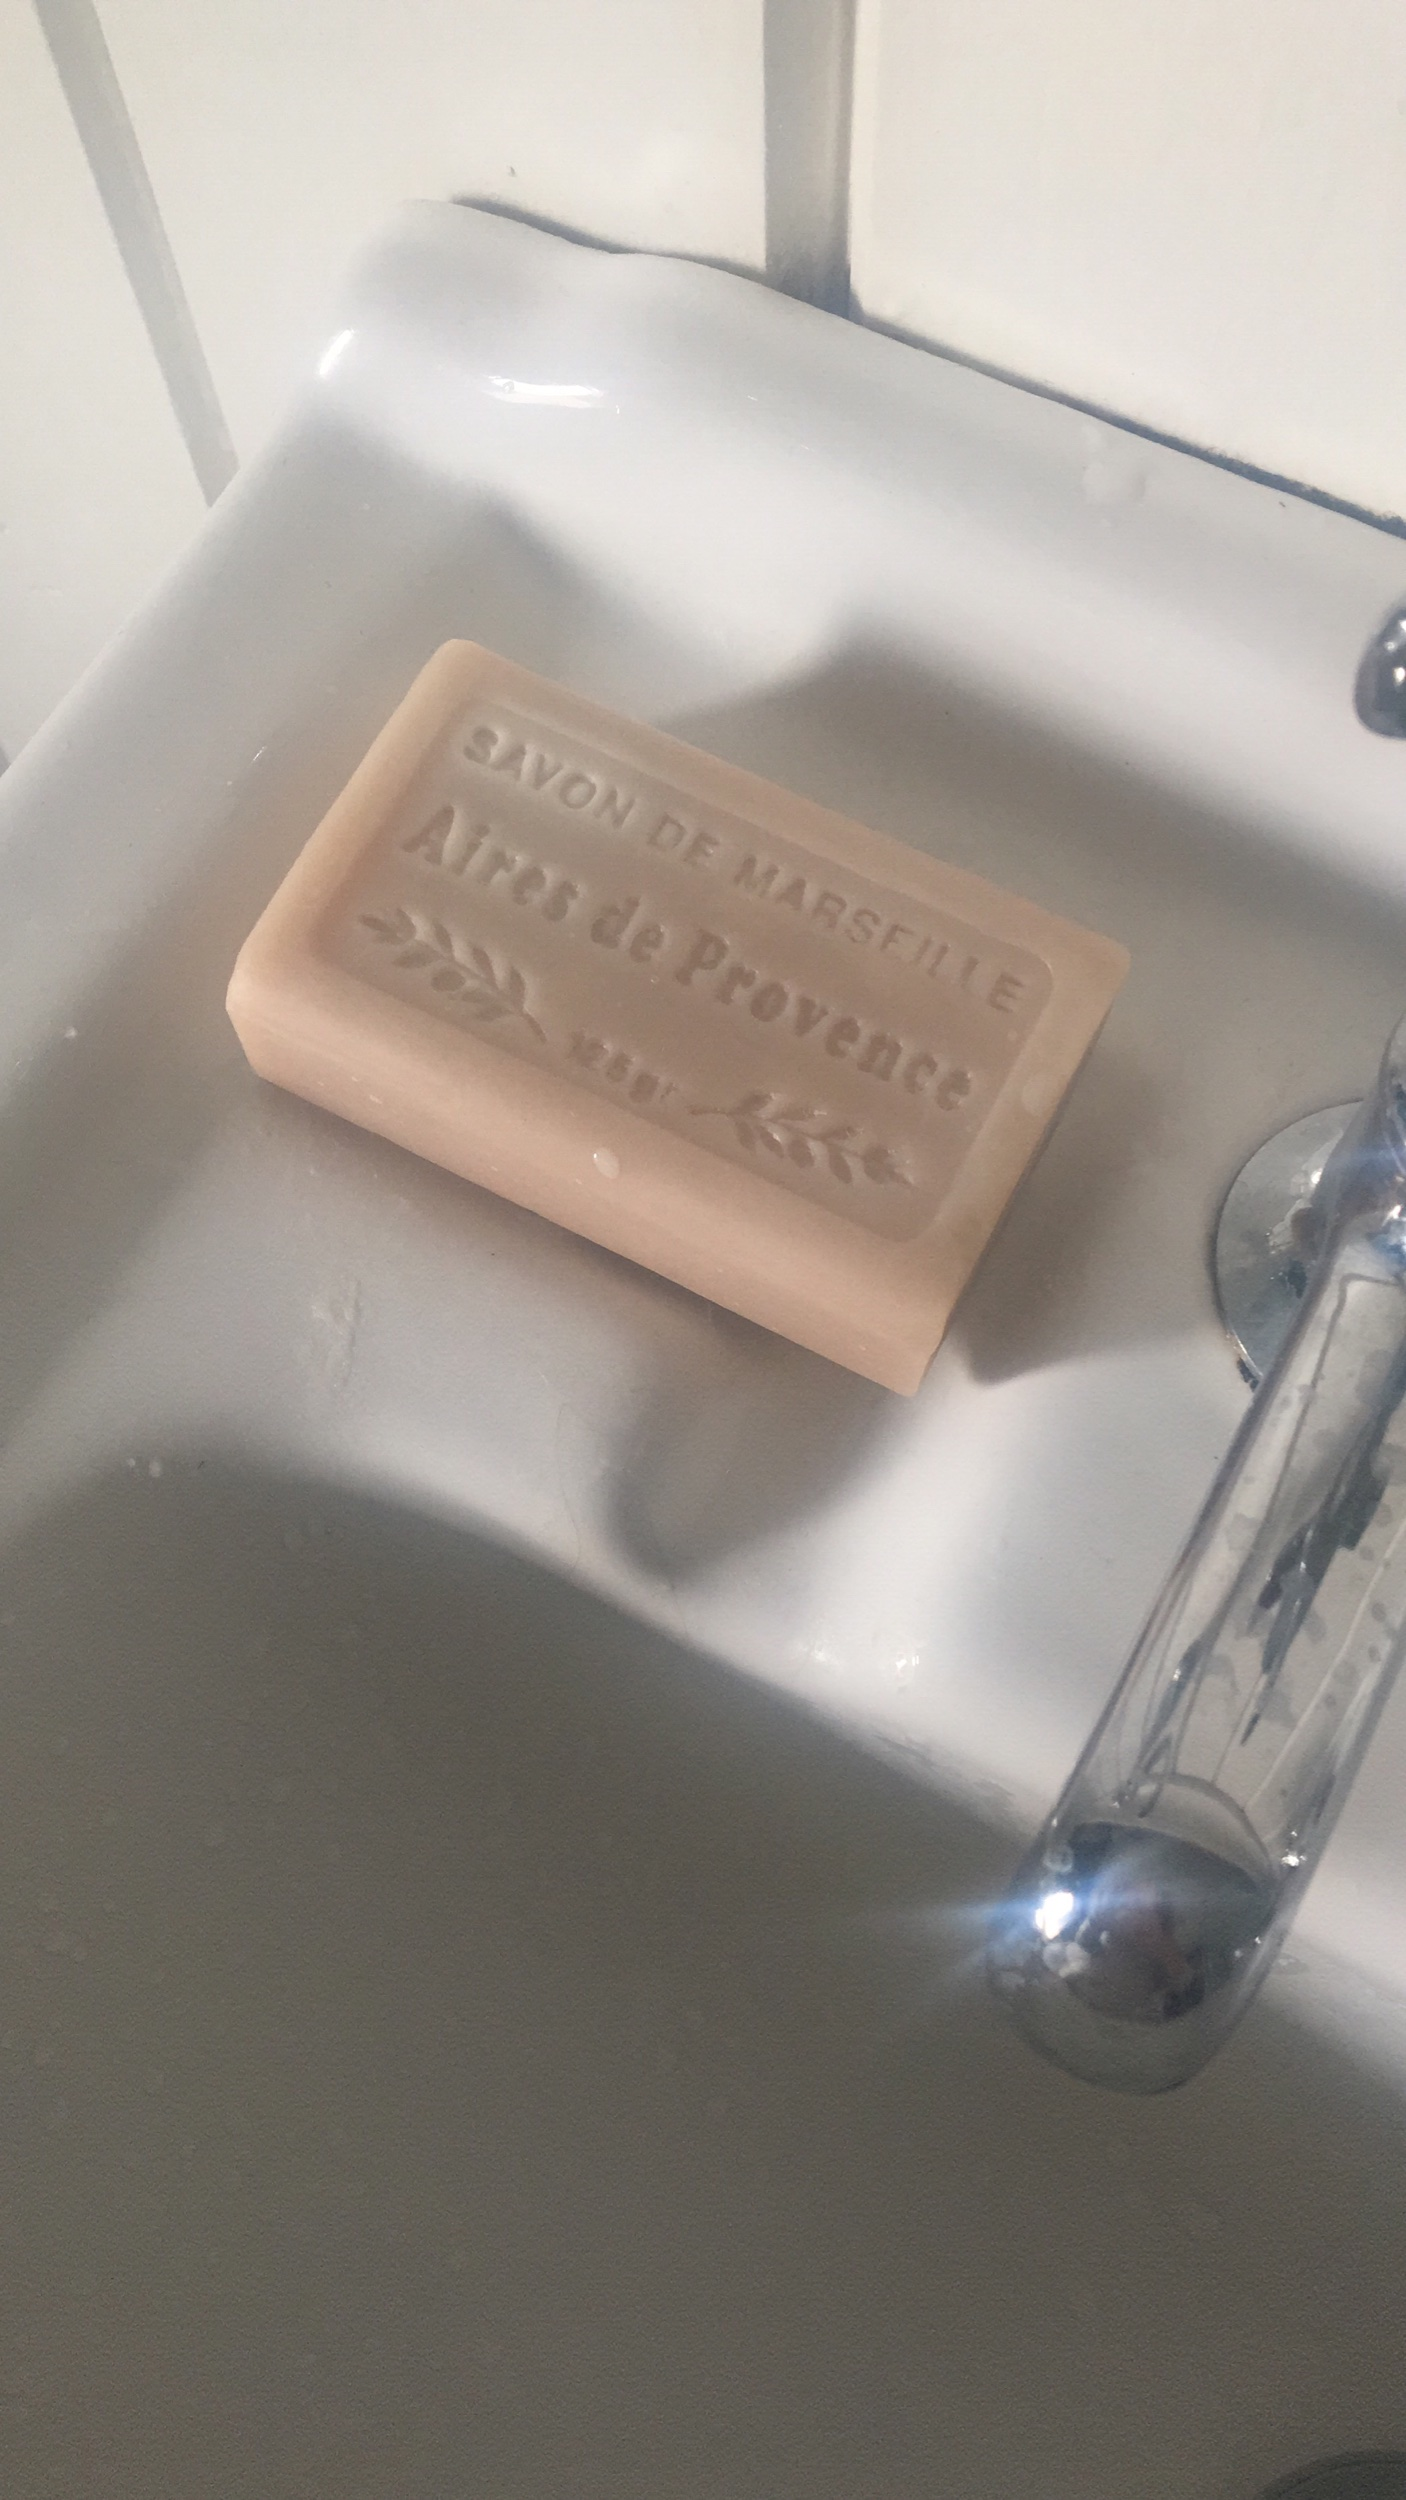 My favourite soap.